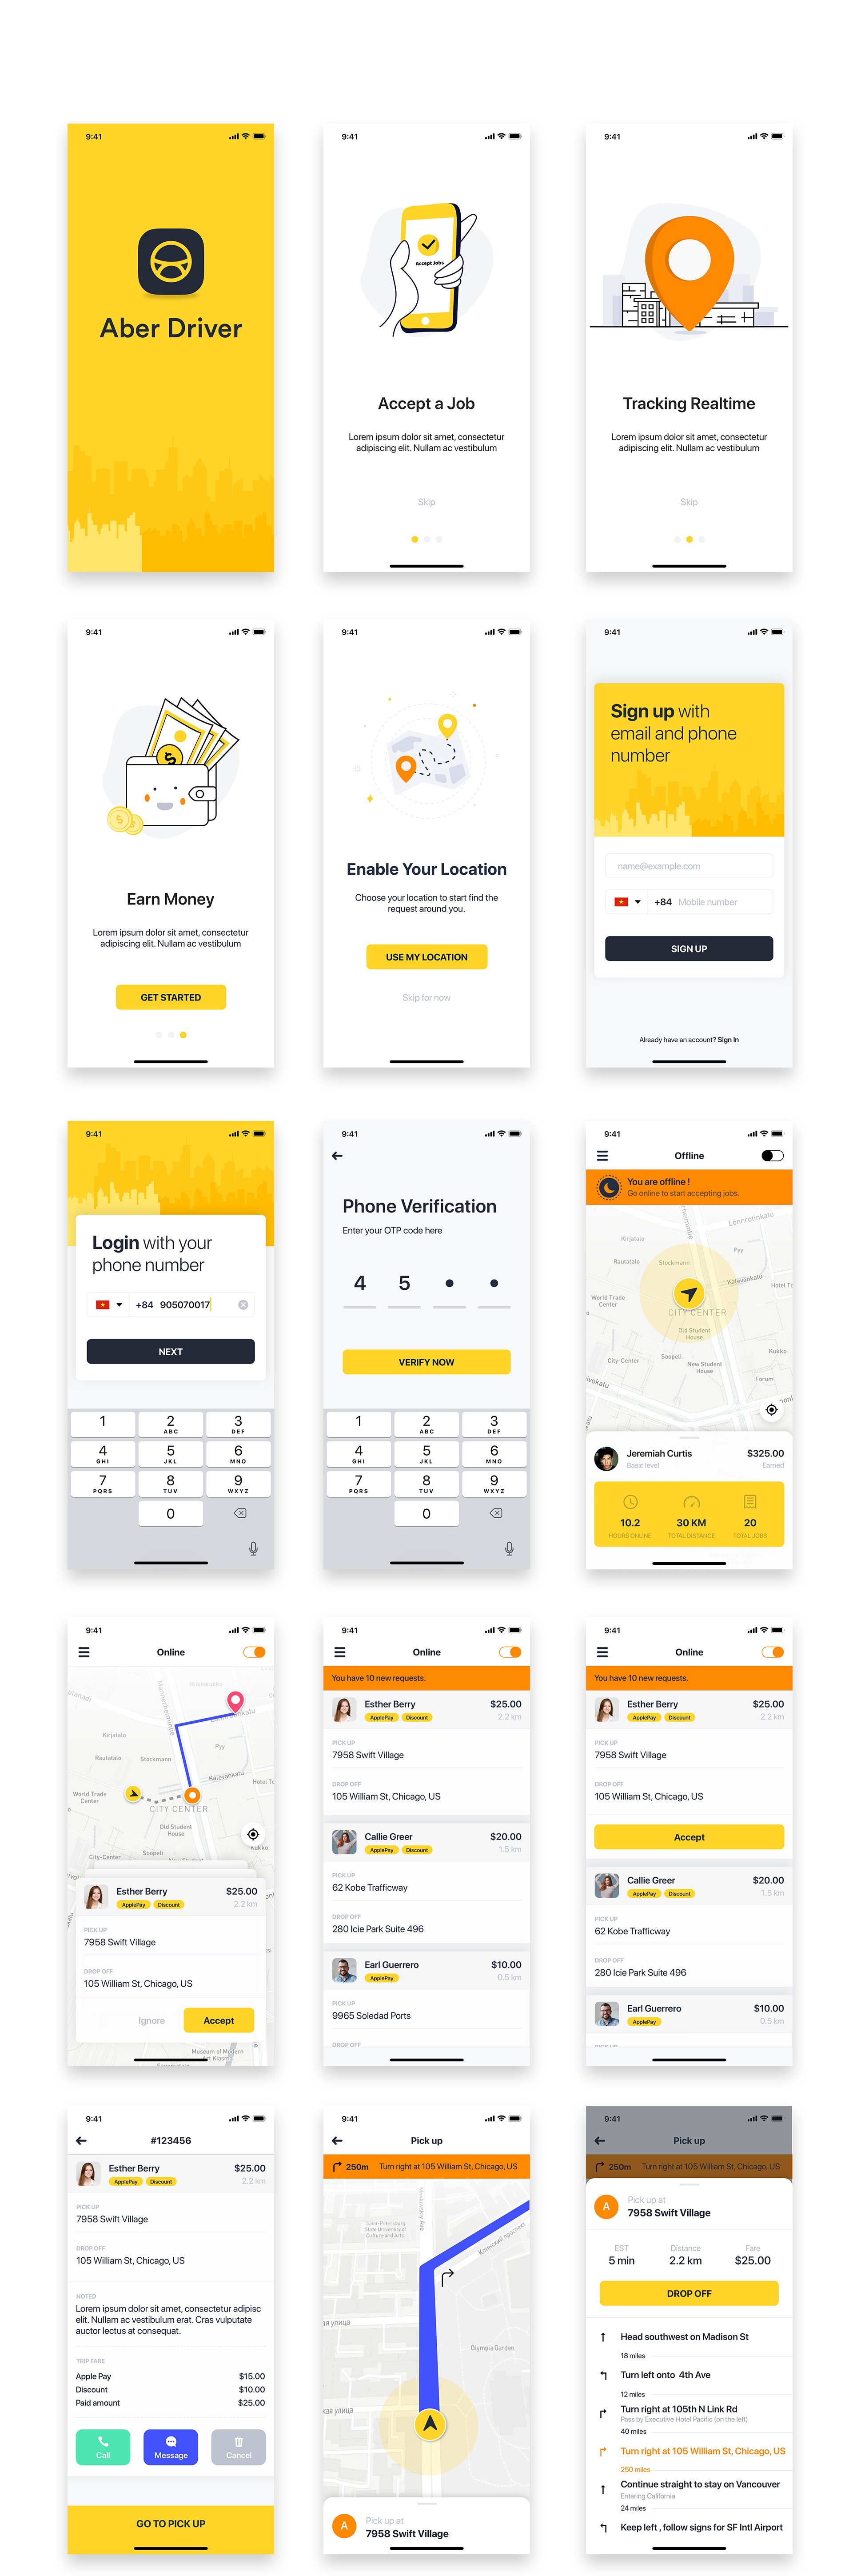 ABER Driver - Taxi UI Kit for Mobile App